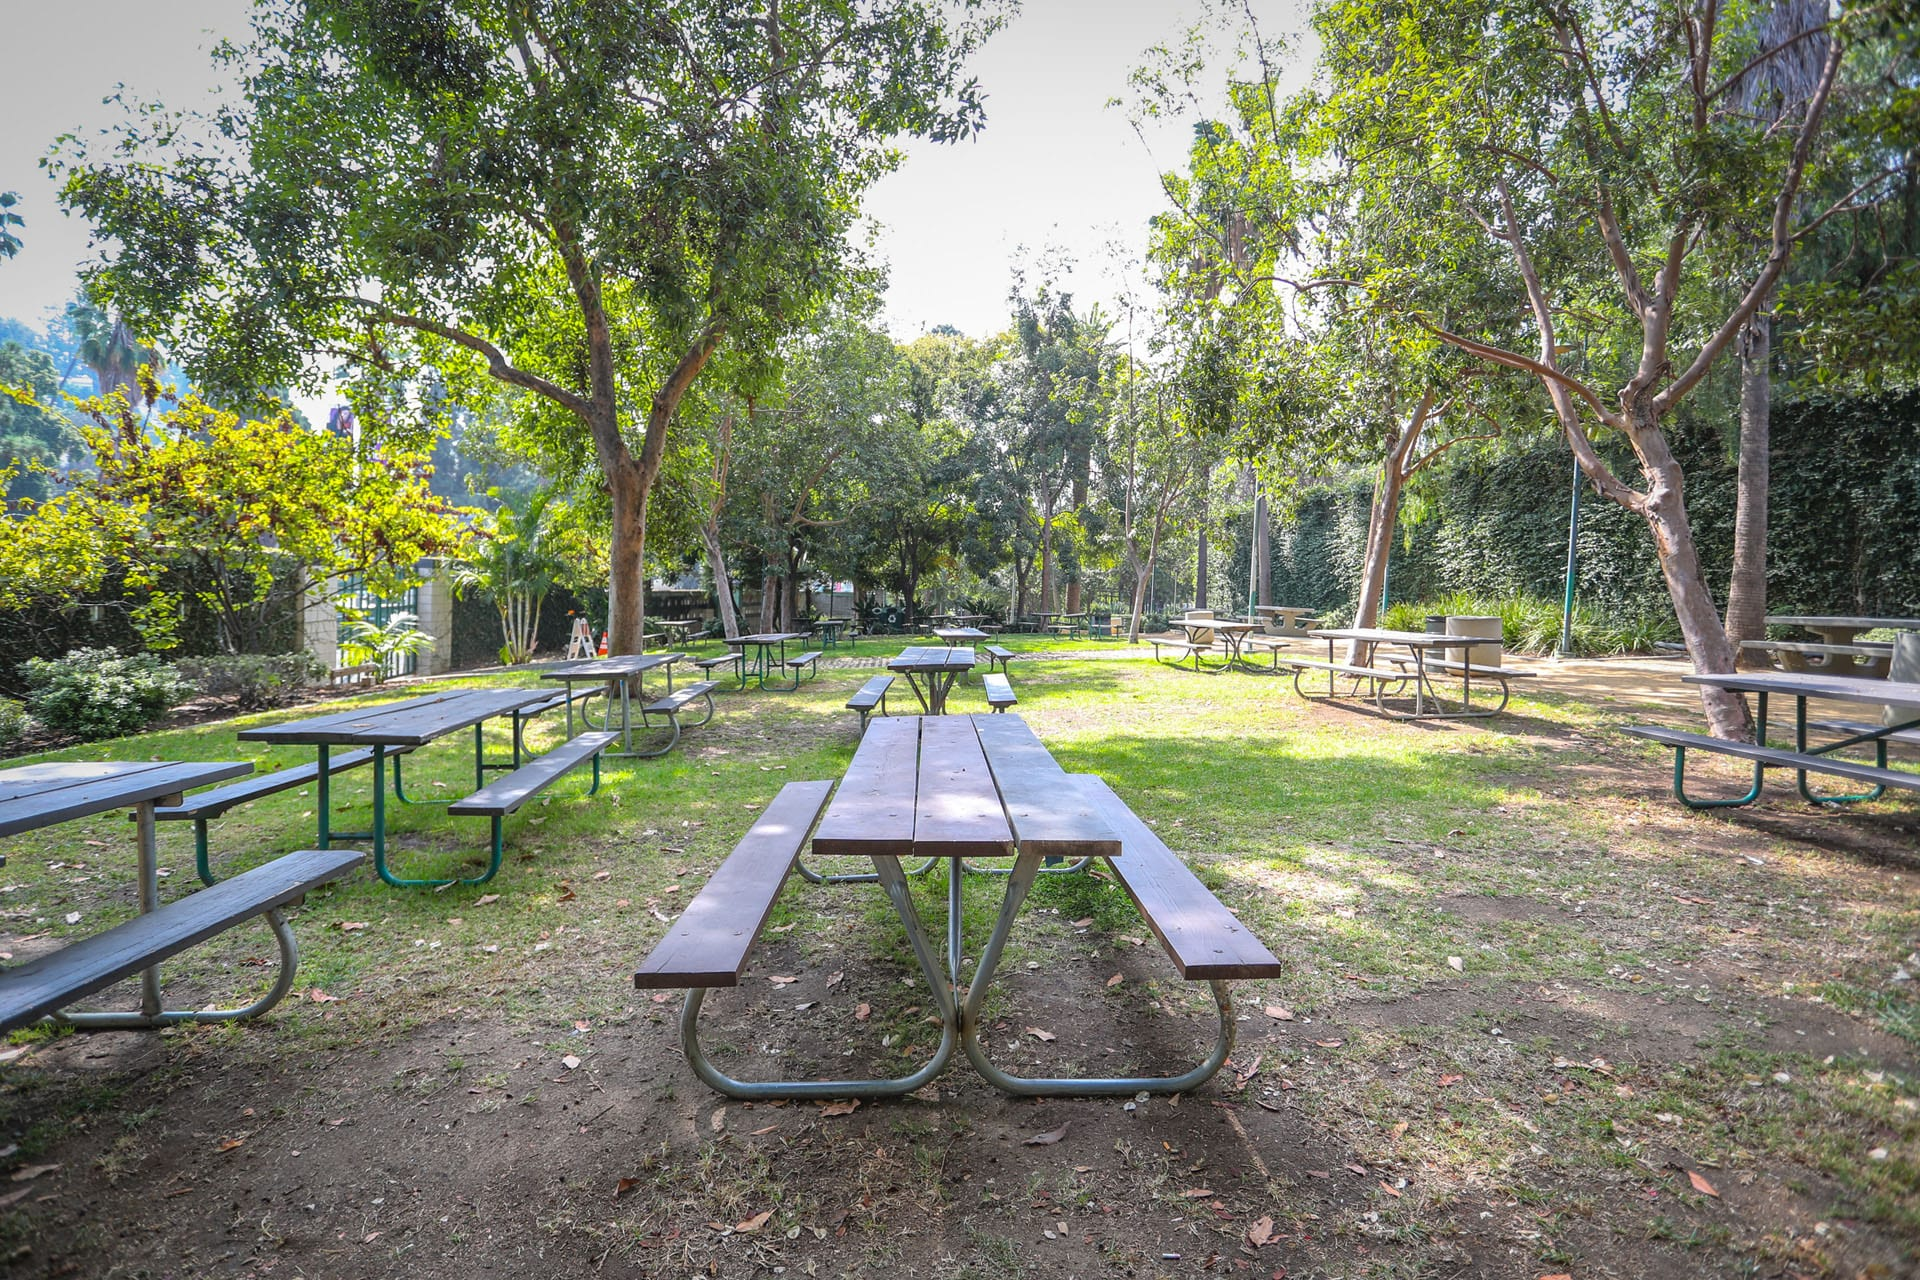 Picnic tables and trees